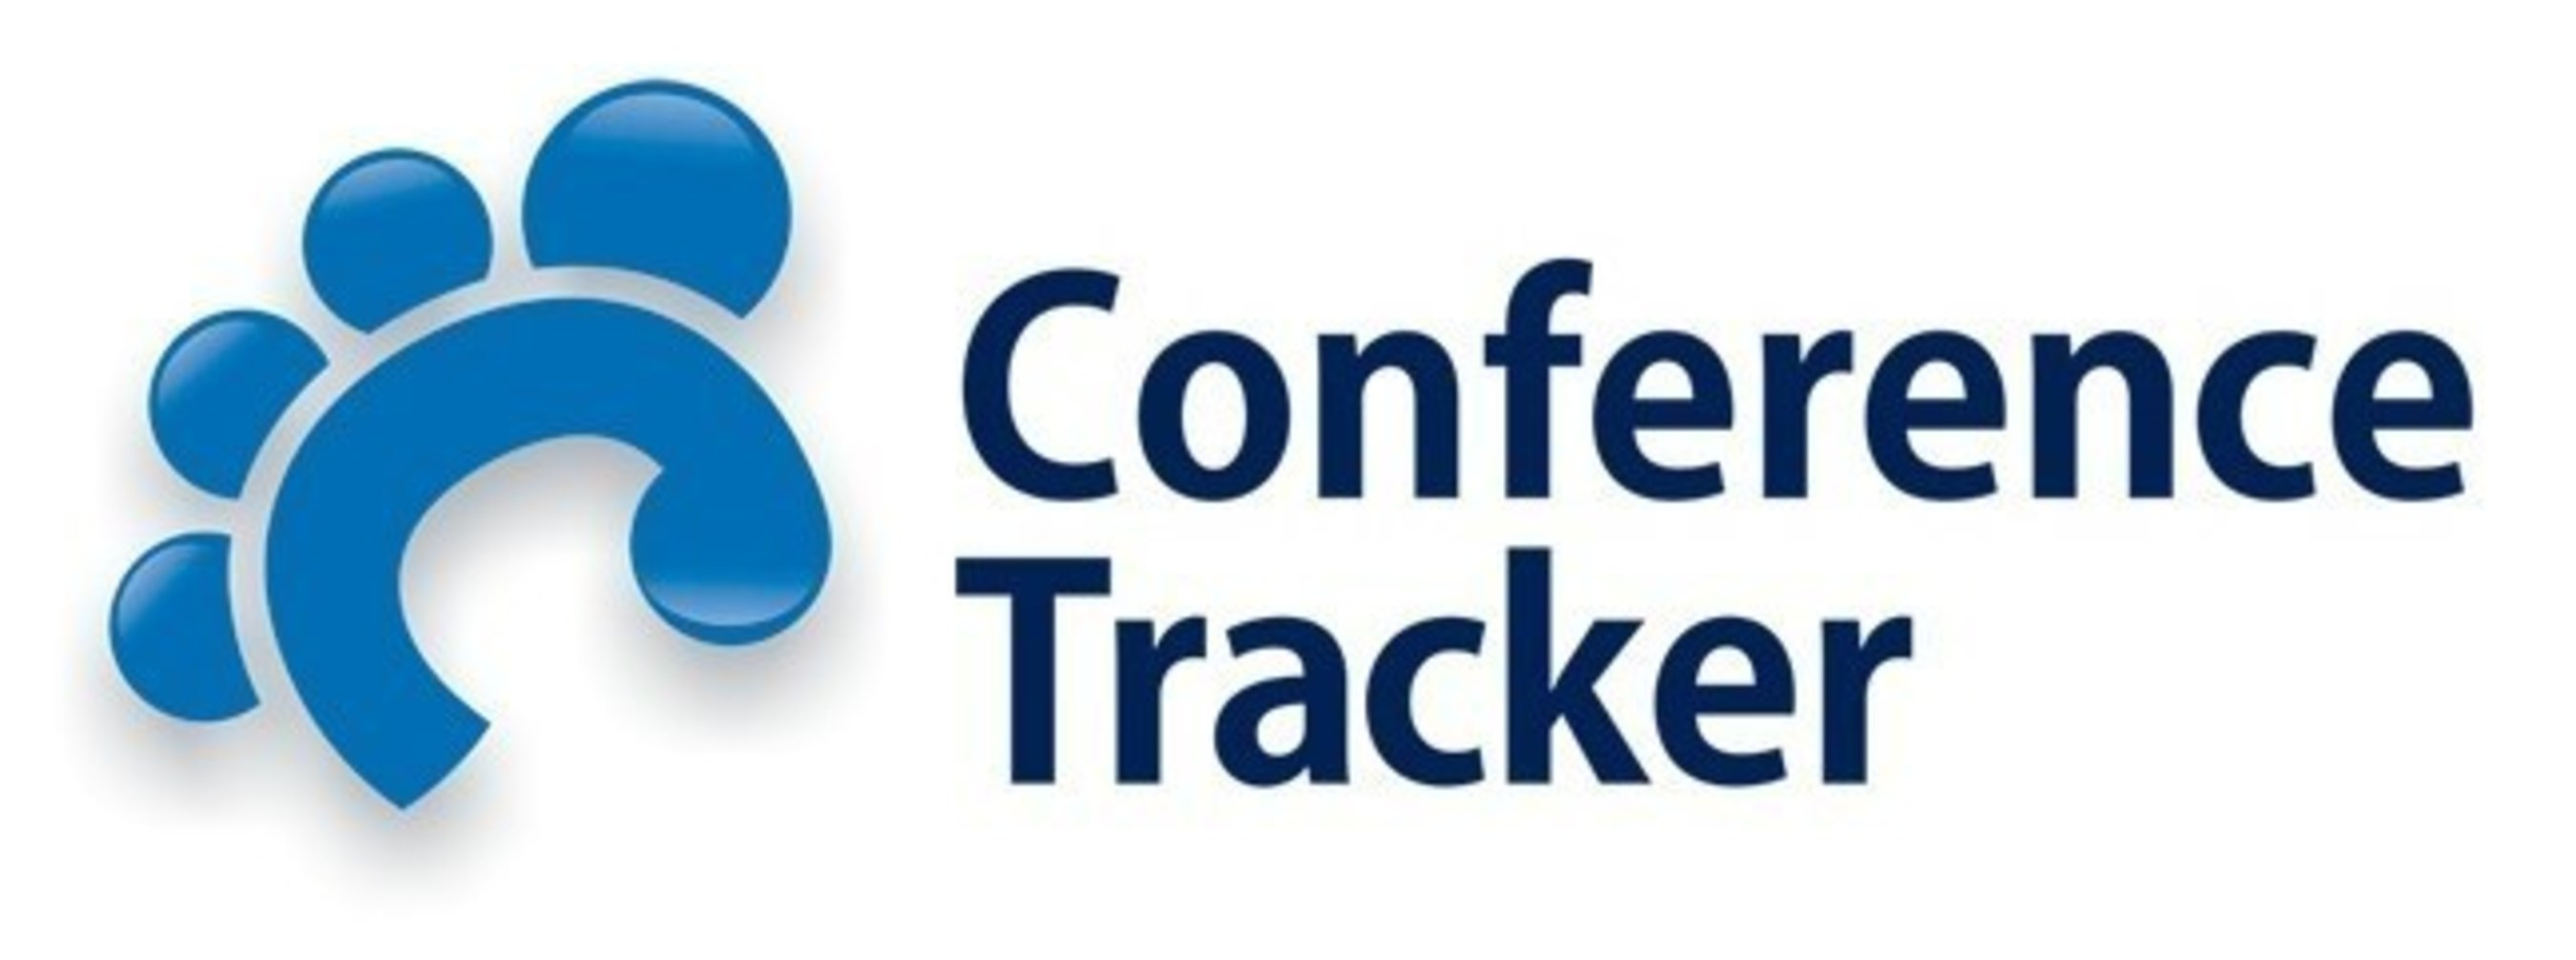 Engineerica Introduces New Version of Conference Tracker